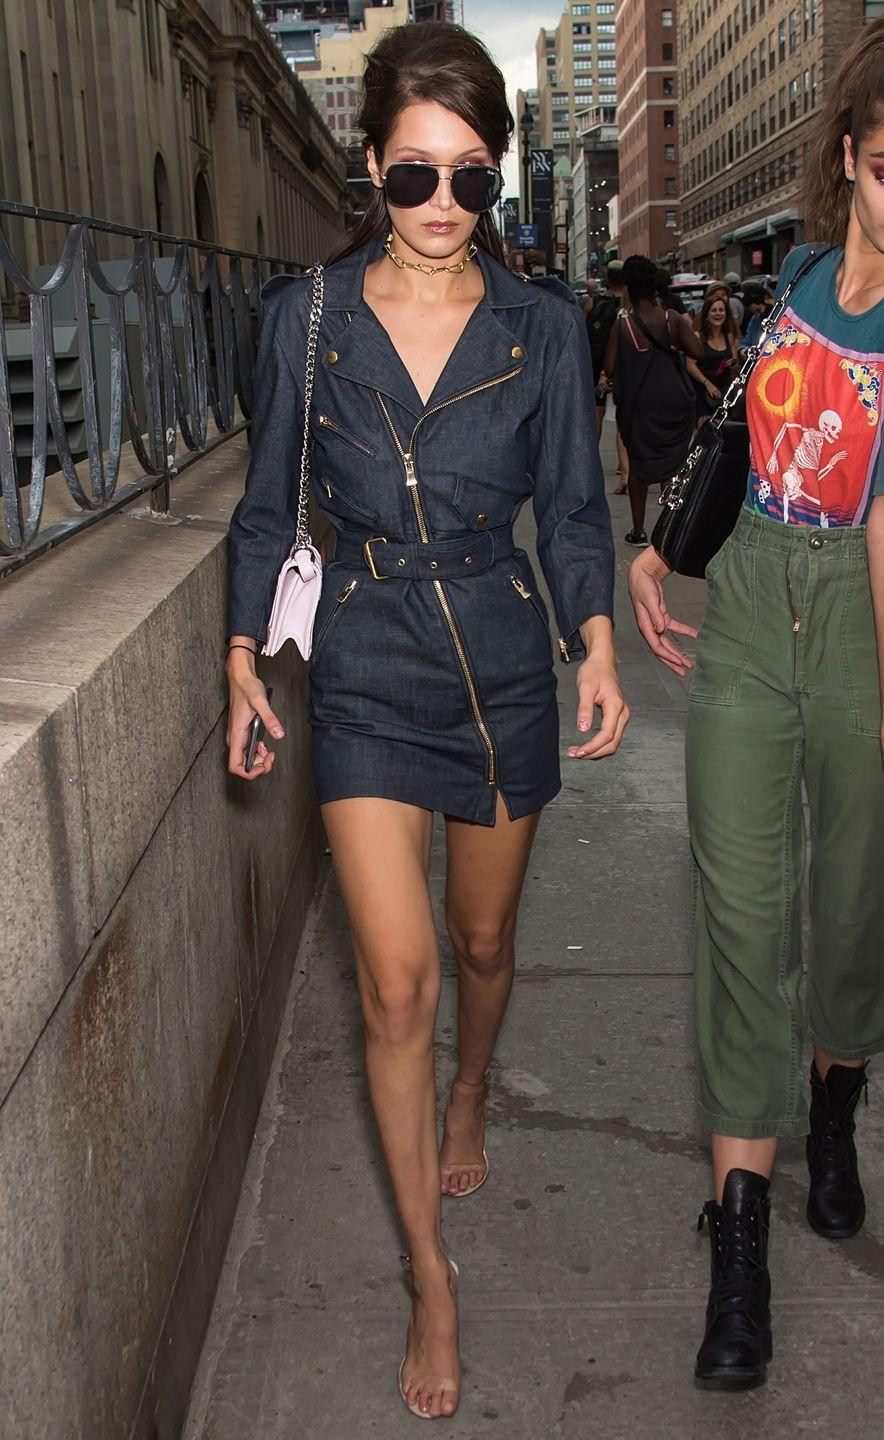 <p>In a denim dress, aviators leaving the Anna Sui fashion show during New York Fashion Week.</p>